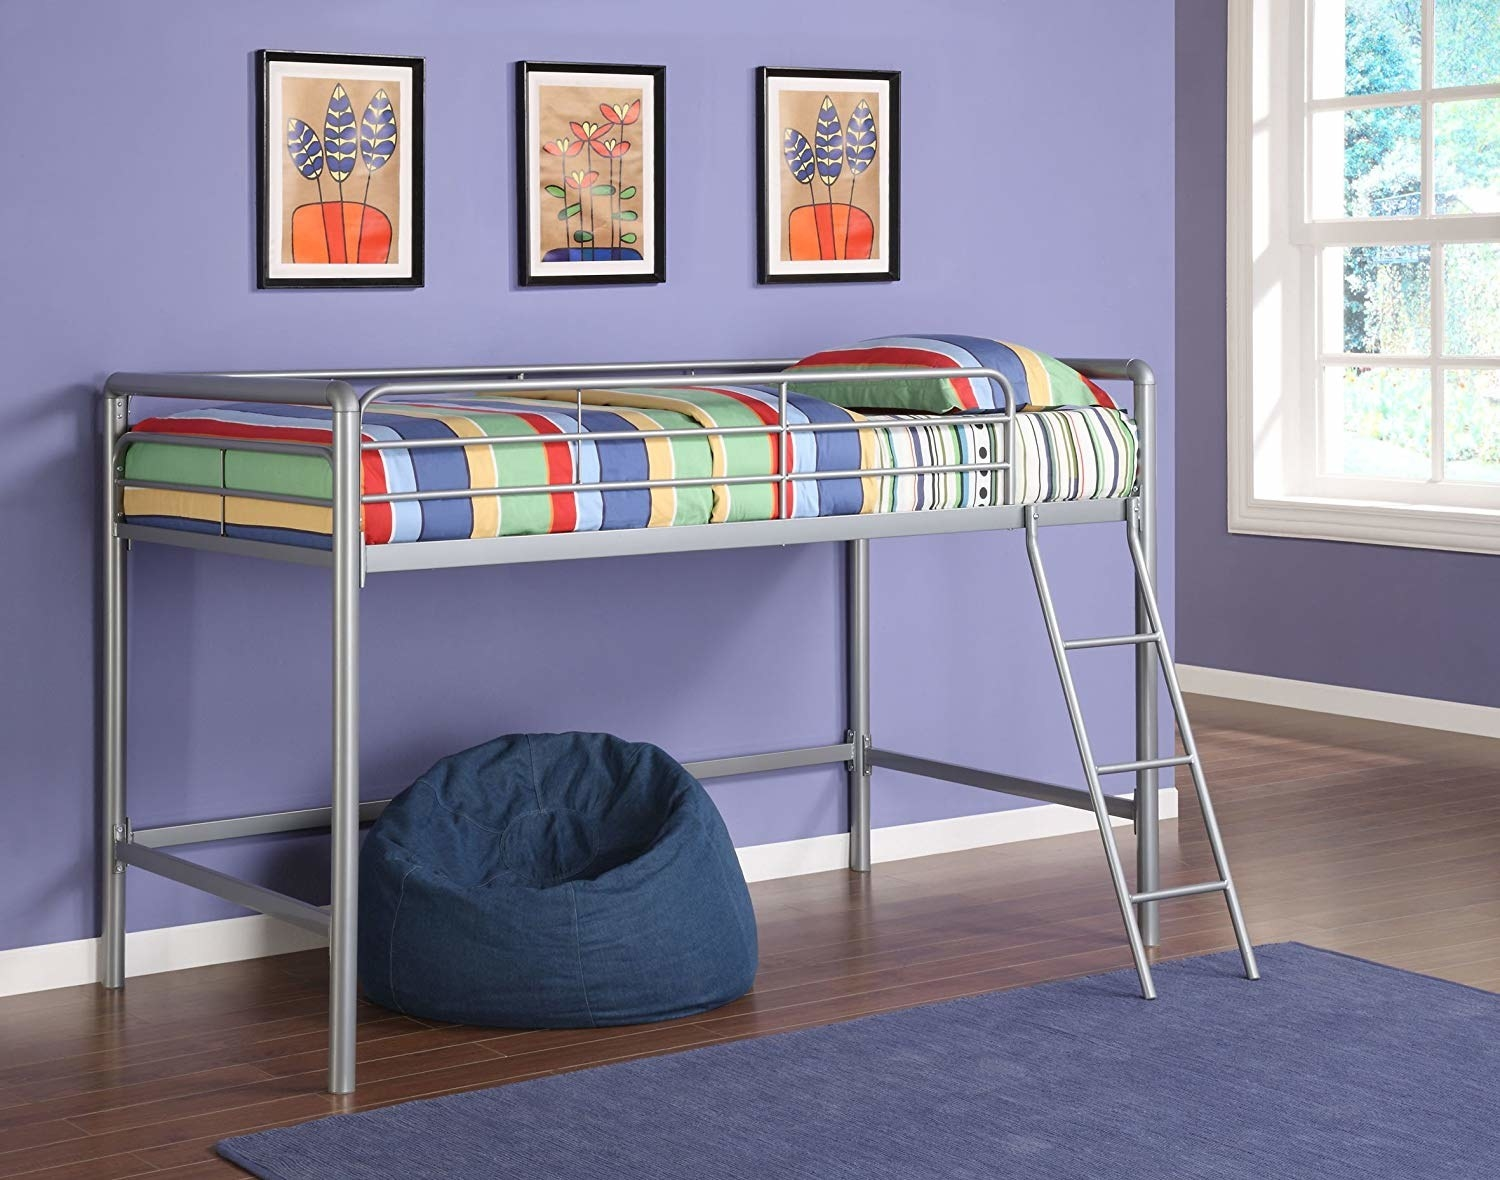 The silver twin-sized loft bed frame in a room with a beanbag chair underneath